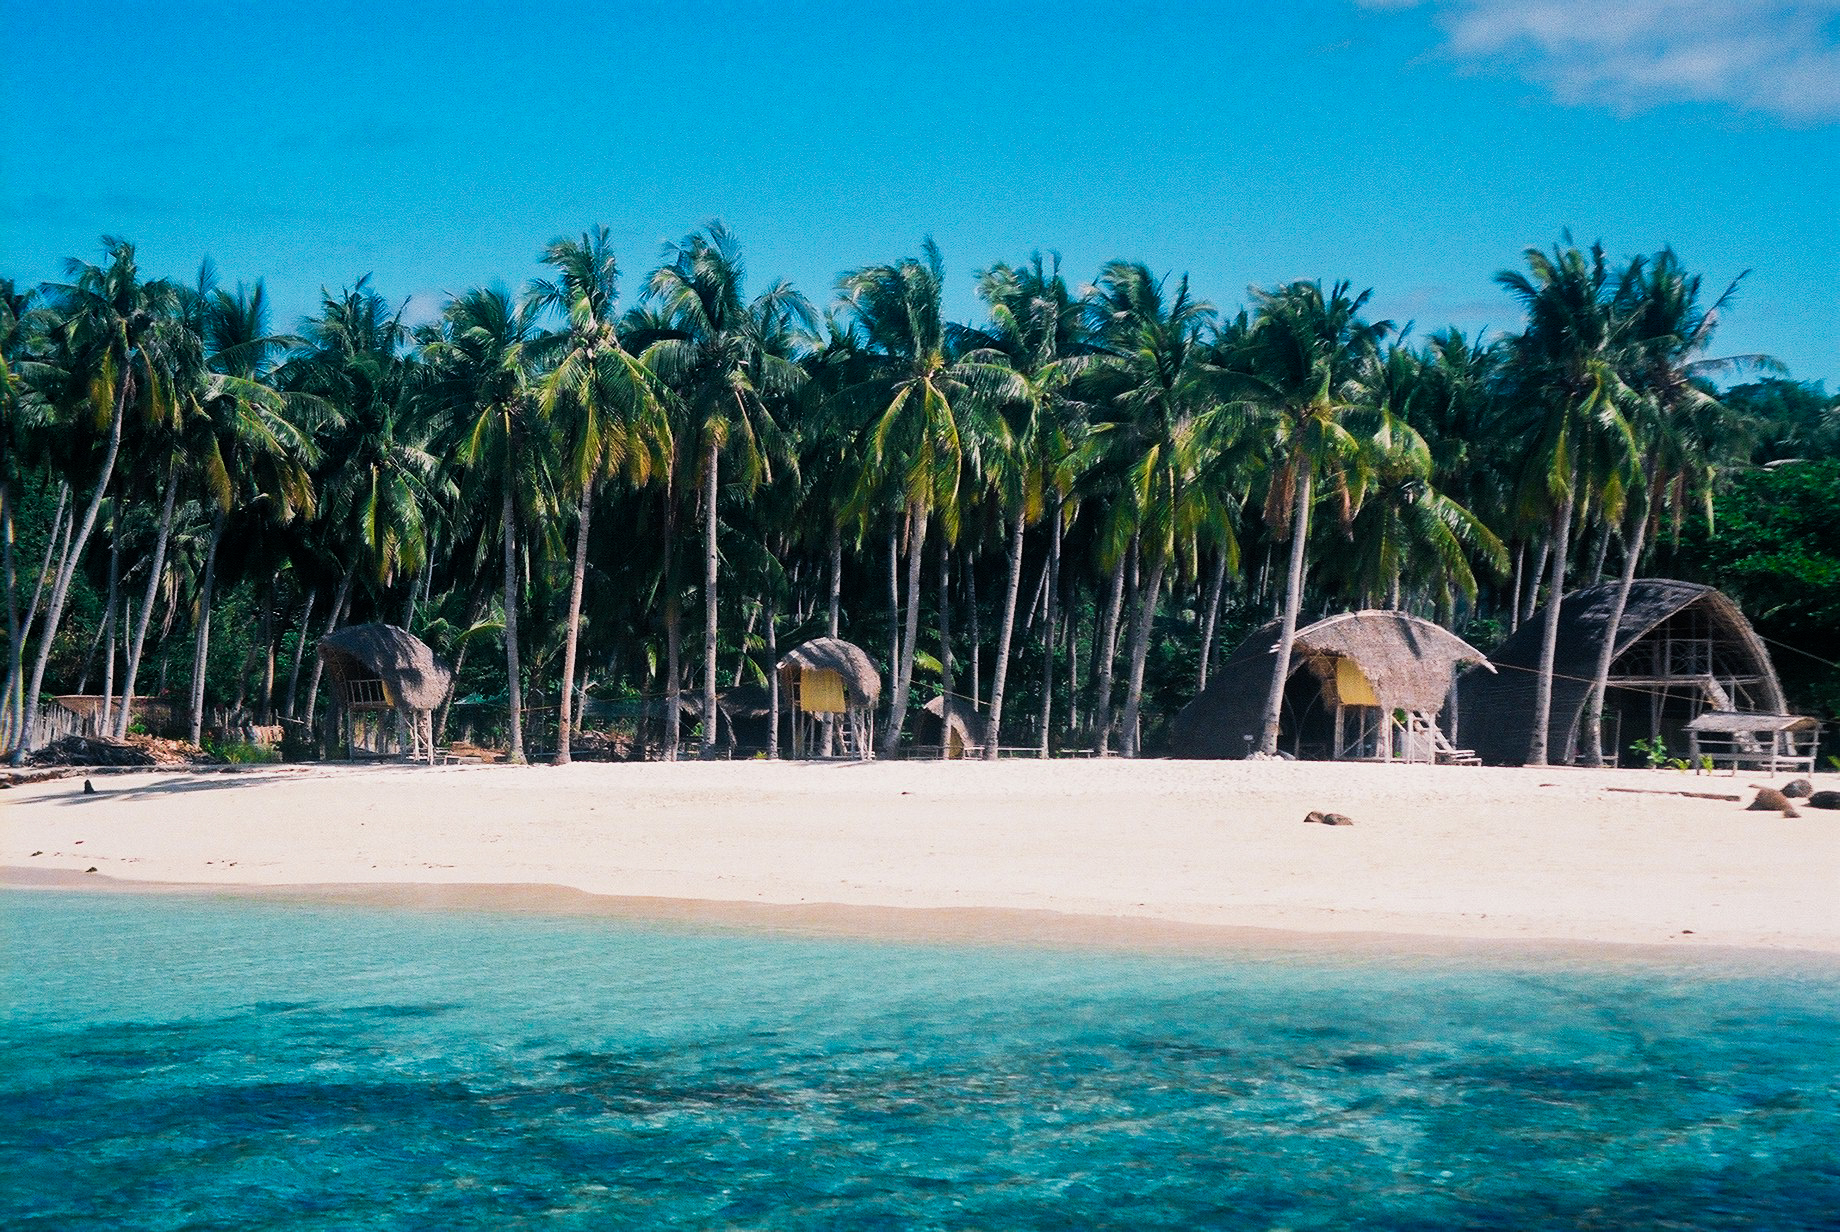 I Sailed Through The Remote Islands Of The Philippines To Capture It's Exotic Beauty With 35mm Film Camera